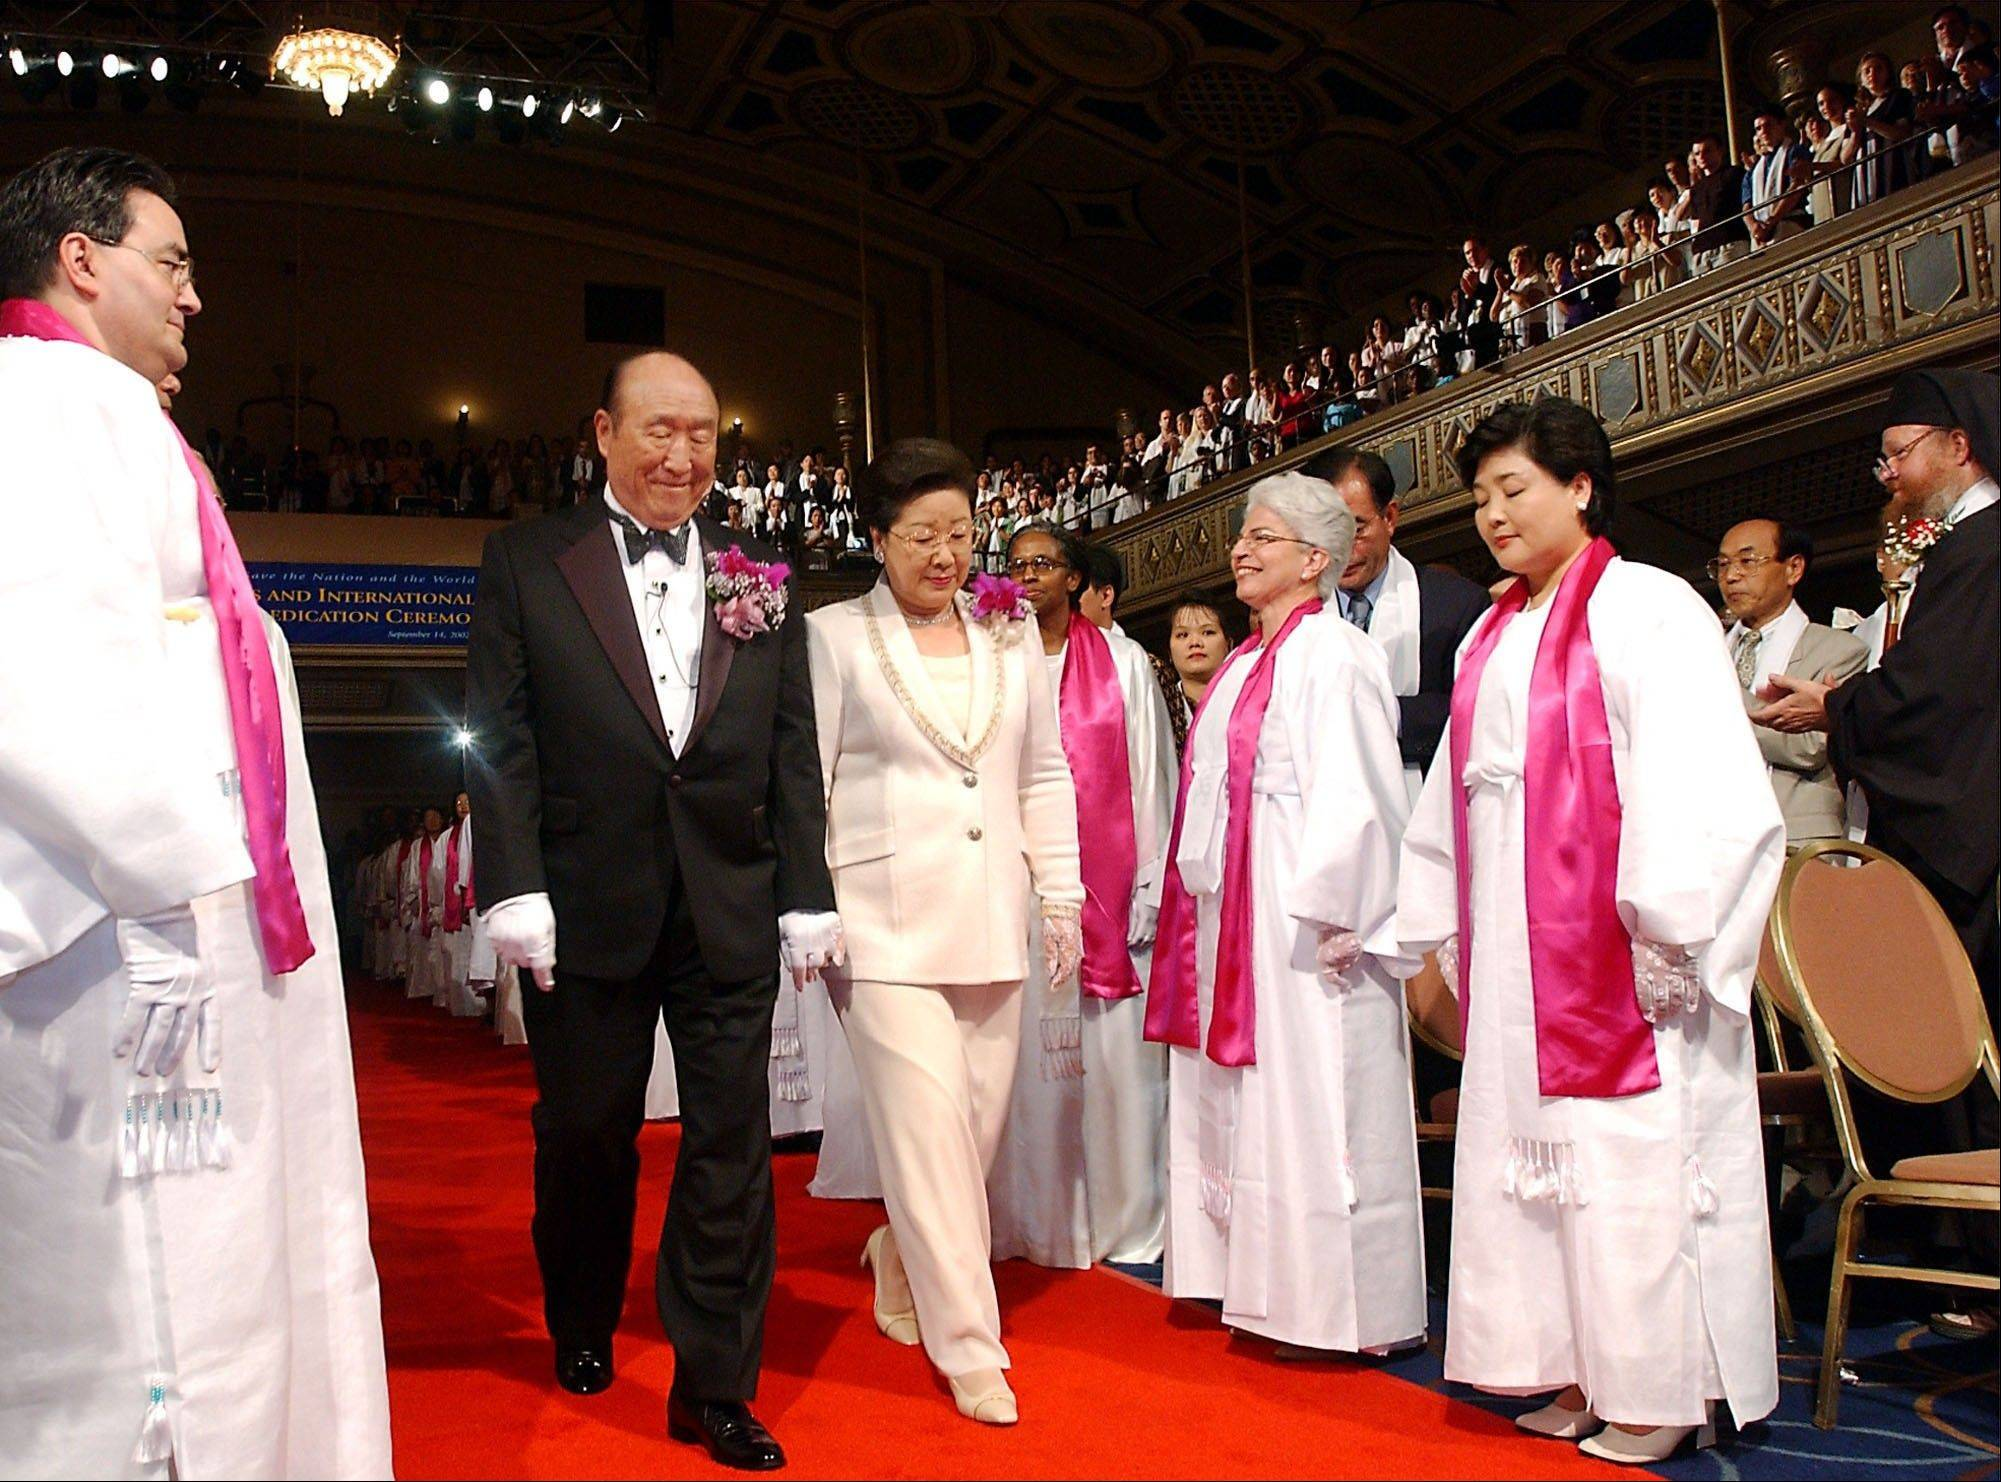 Rev. Sun Myung Moon, center left, and his wife, Hak Ja Han Moon, are introduced during the Affirmation of Vows part of the Interreligious and International Couple's Blessing and Rededication Ceremony at New York's Manhattan Center Sept. 14, 2002. About 500-600 couples participated in the New York ceremony and an estimated 21 million couples participated worldwide via a simulcast to 185 countries.